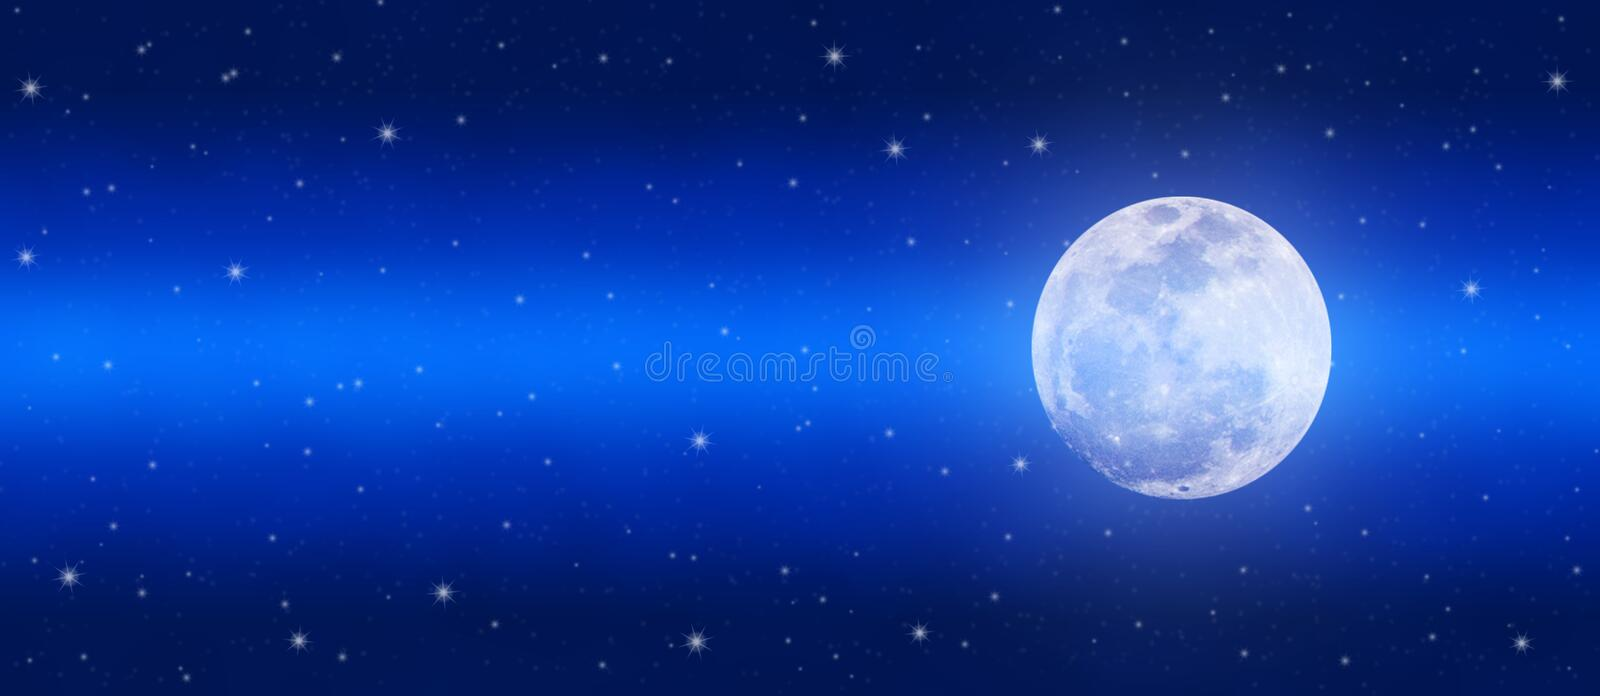 Bright Full Moon and Twinkle Stars in Shining Blue Night Sky Banner stock image